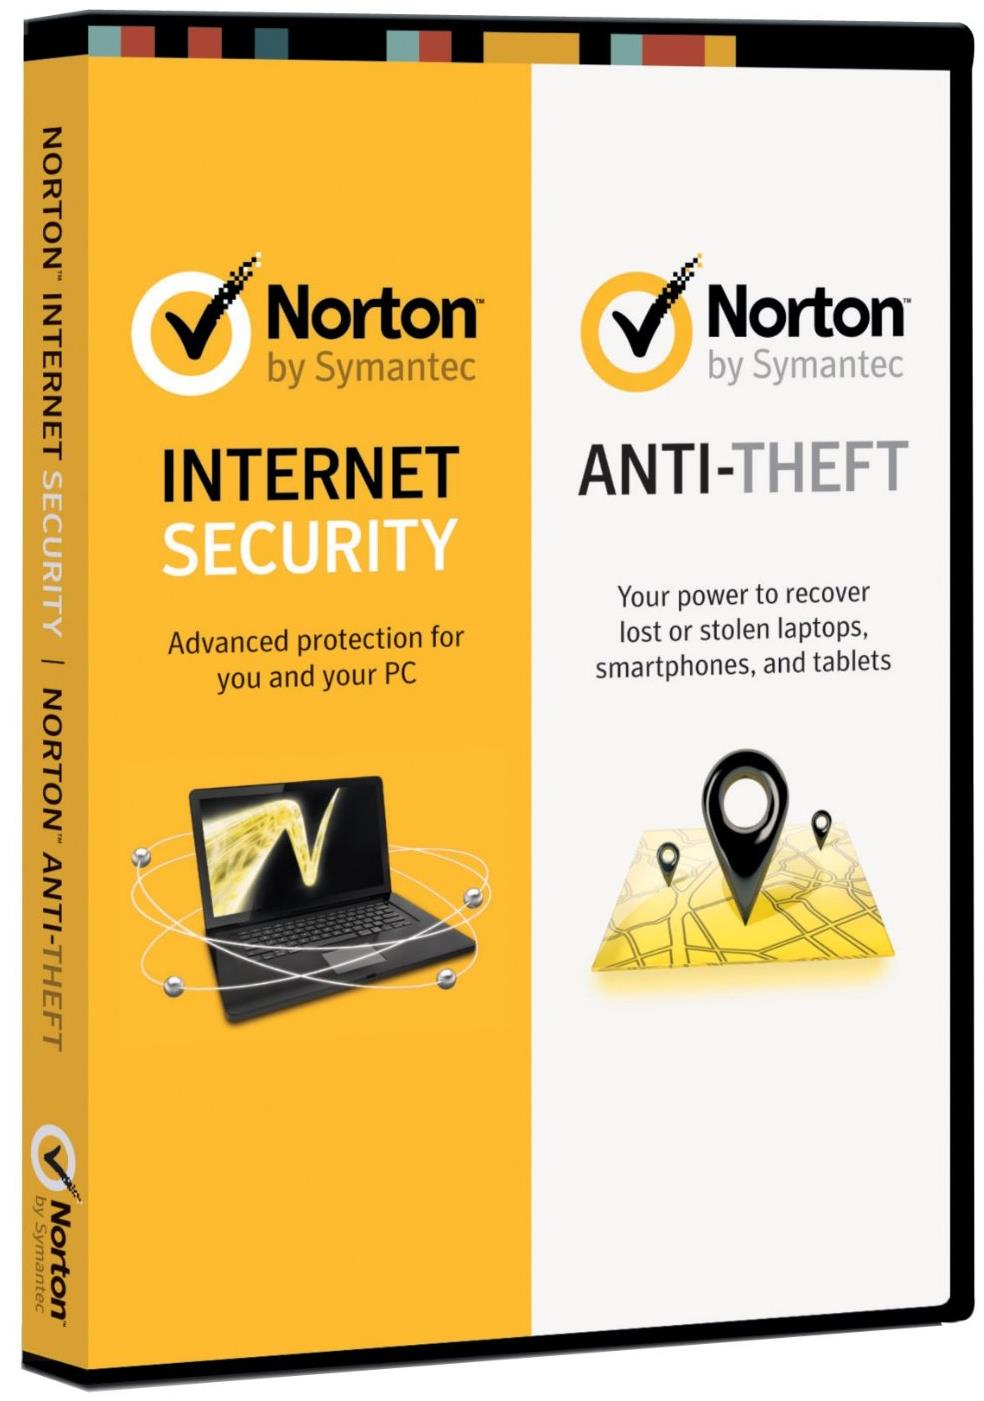 Symantec Norton Internet Security 2013 1 User + Norton Anti Theft 3 User